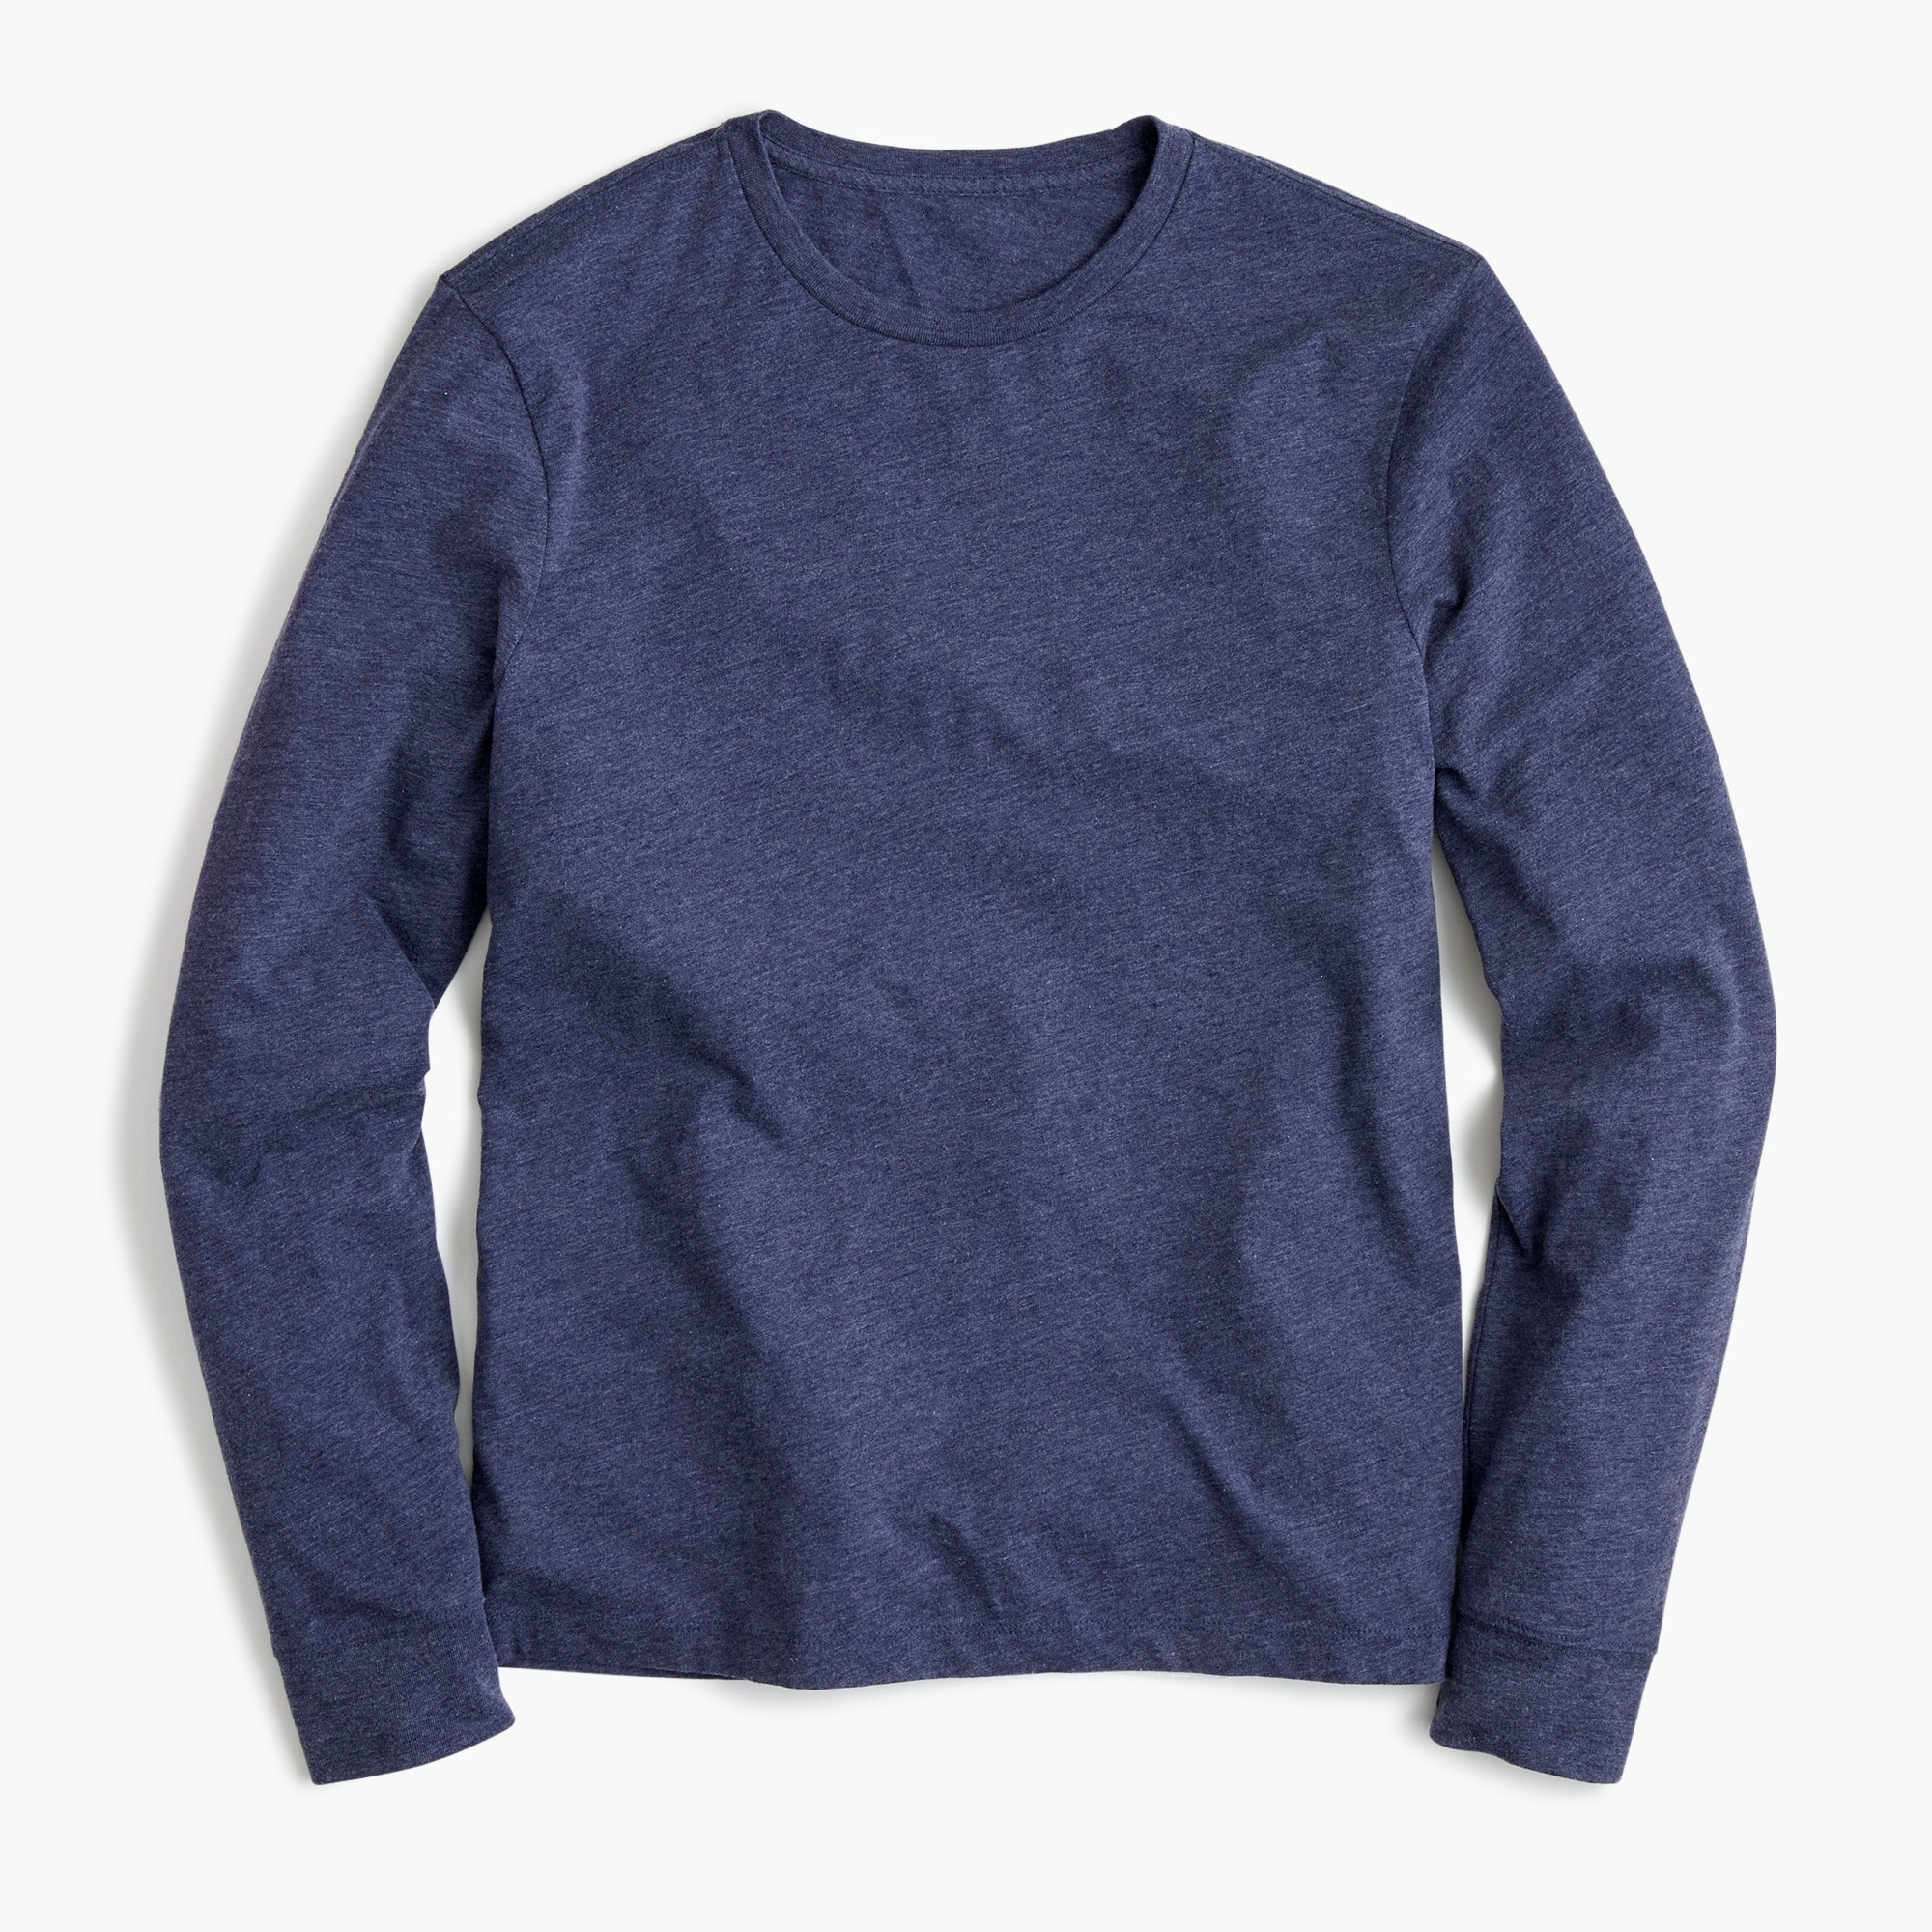 J.Crew Mercantile Broken-in long-sleeve T-shirt in heather navy men t-shirts & polos c